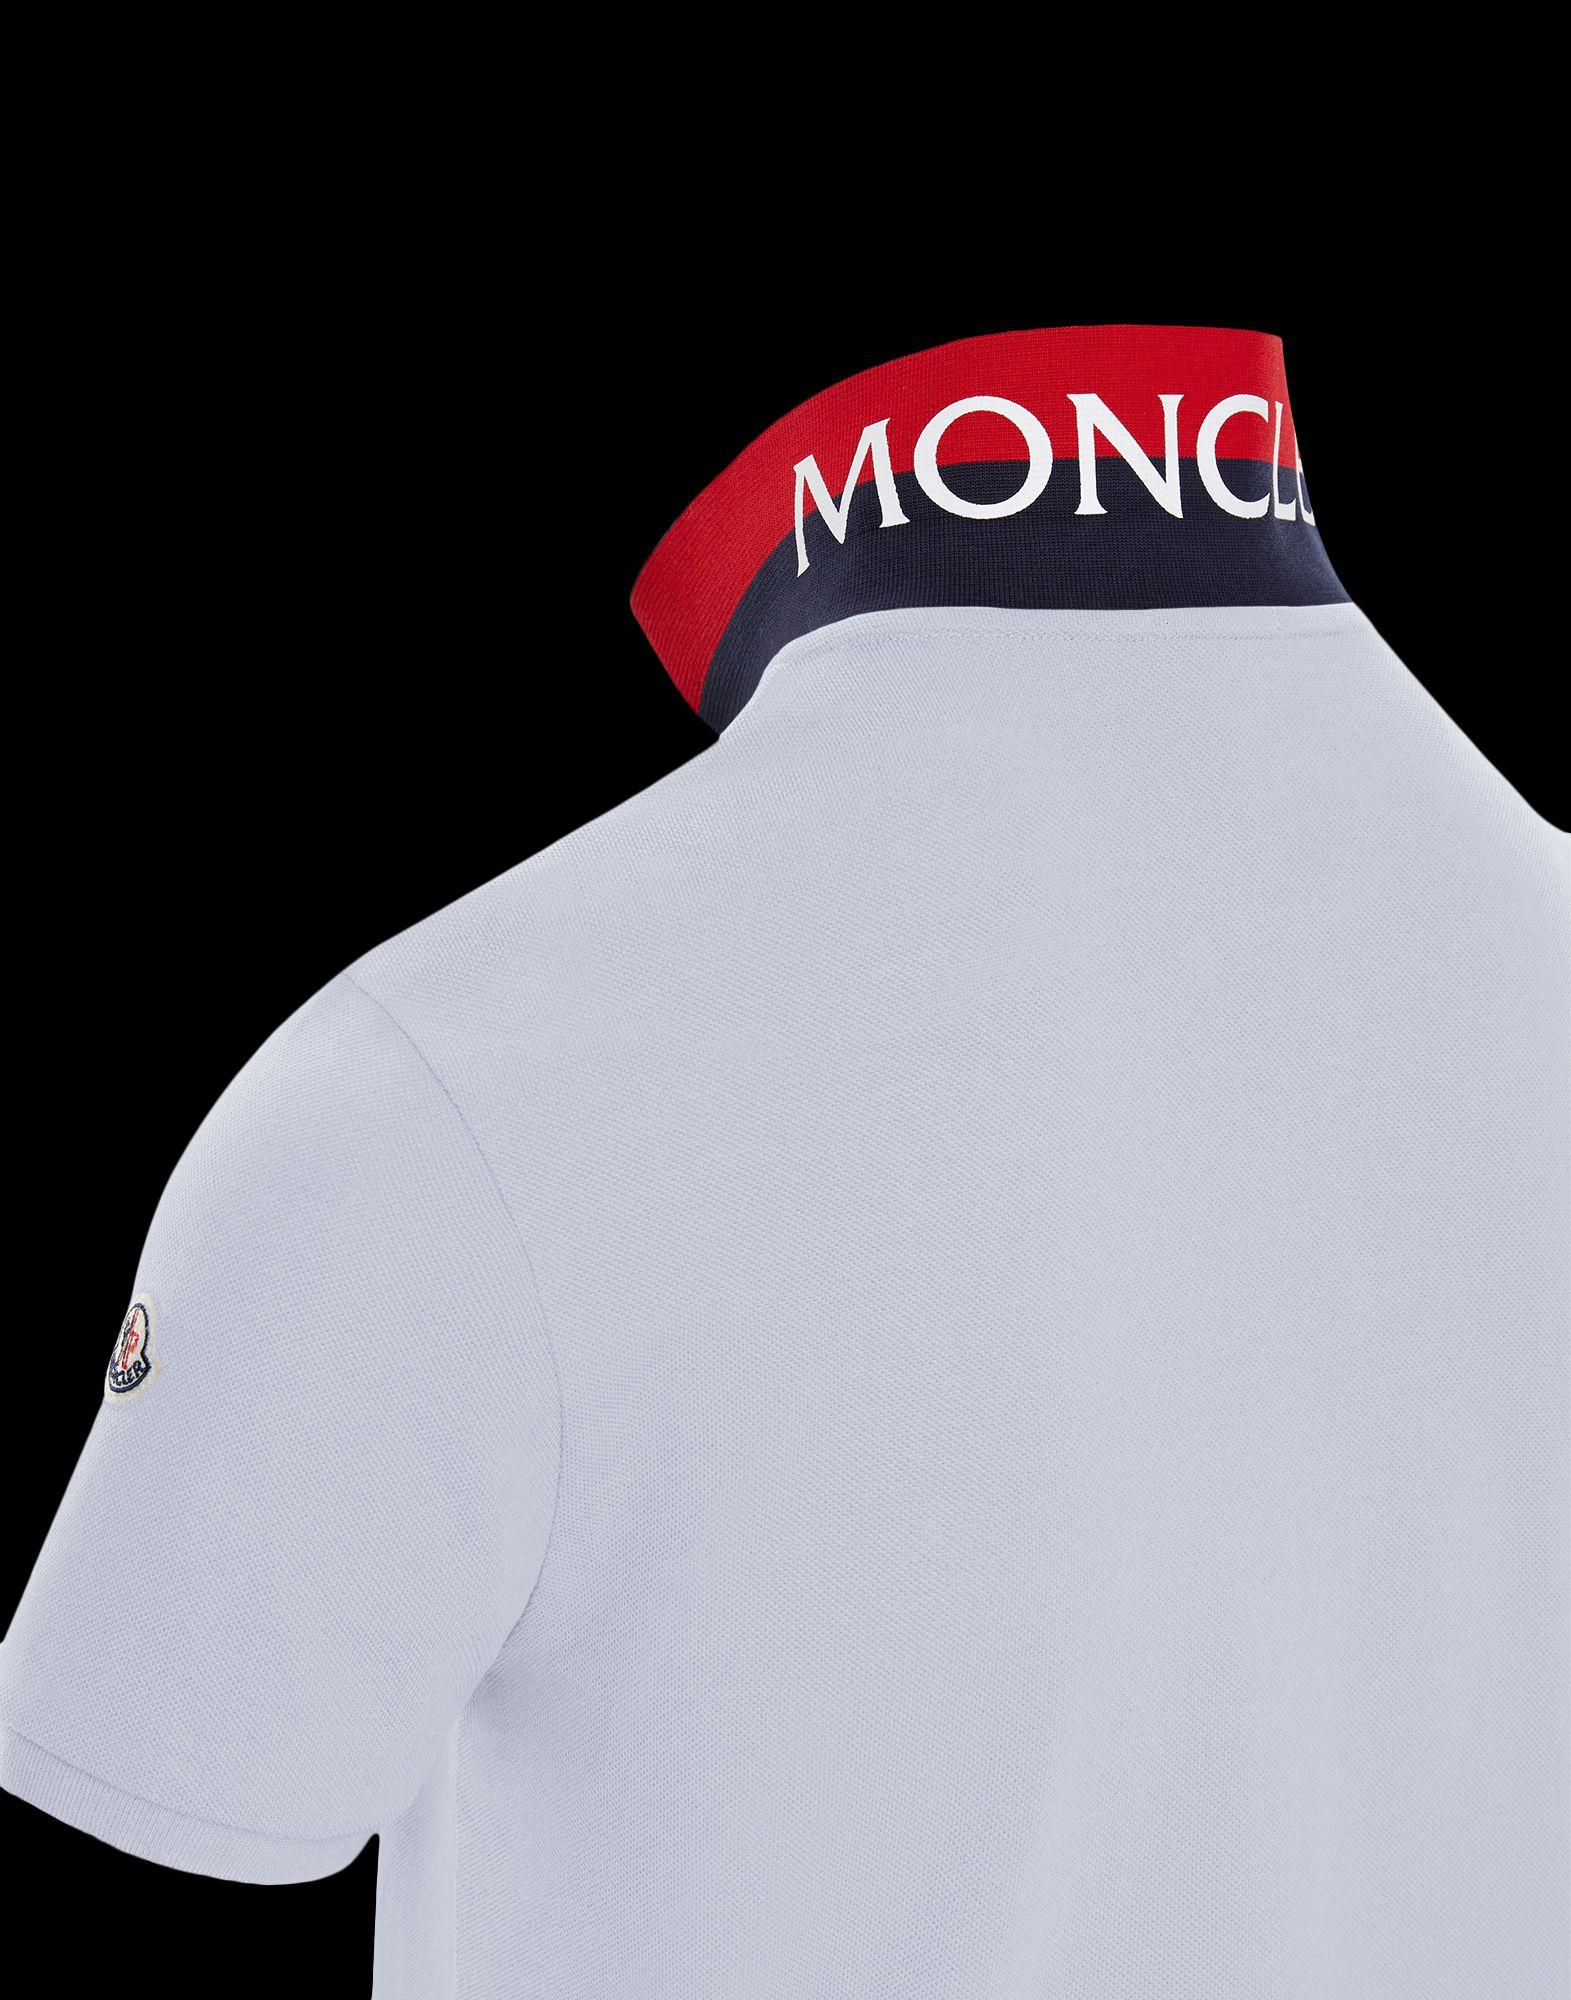 0d526e24263a3 Lyst - Moncler Polo in White for Men